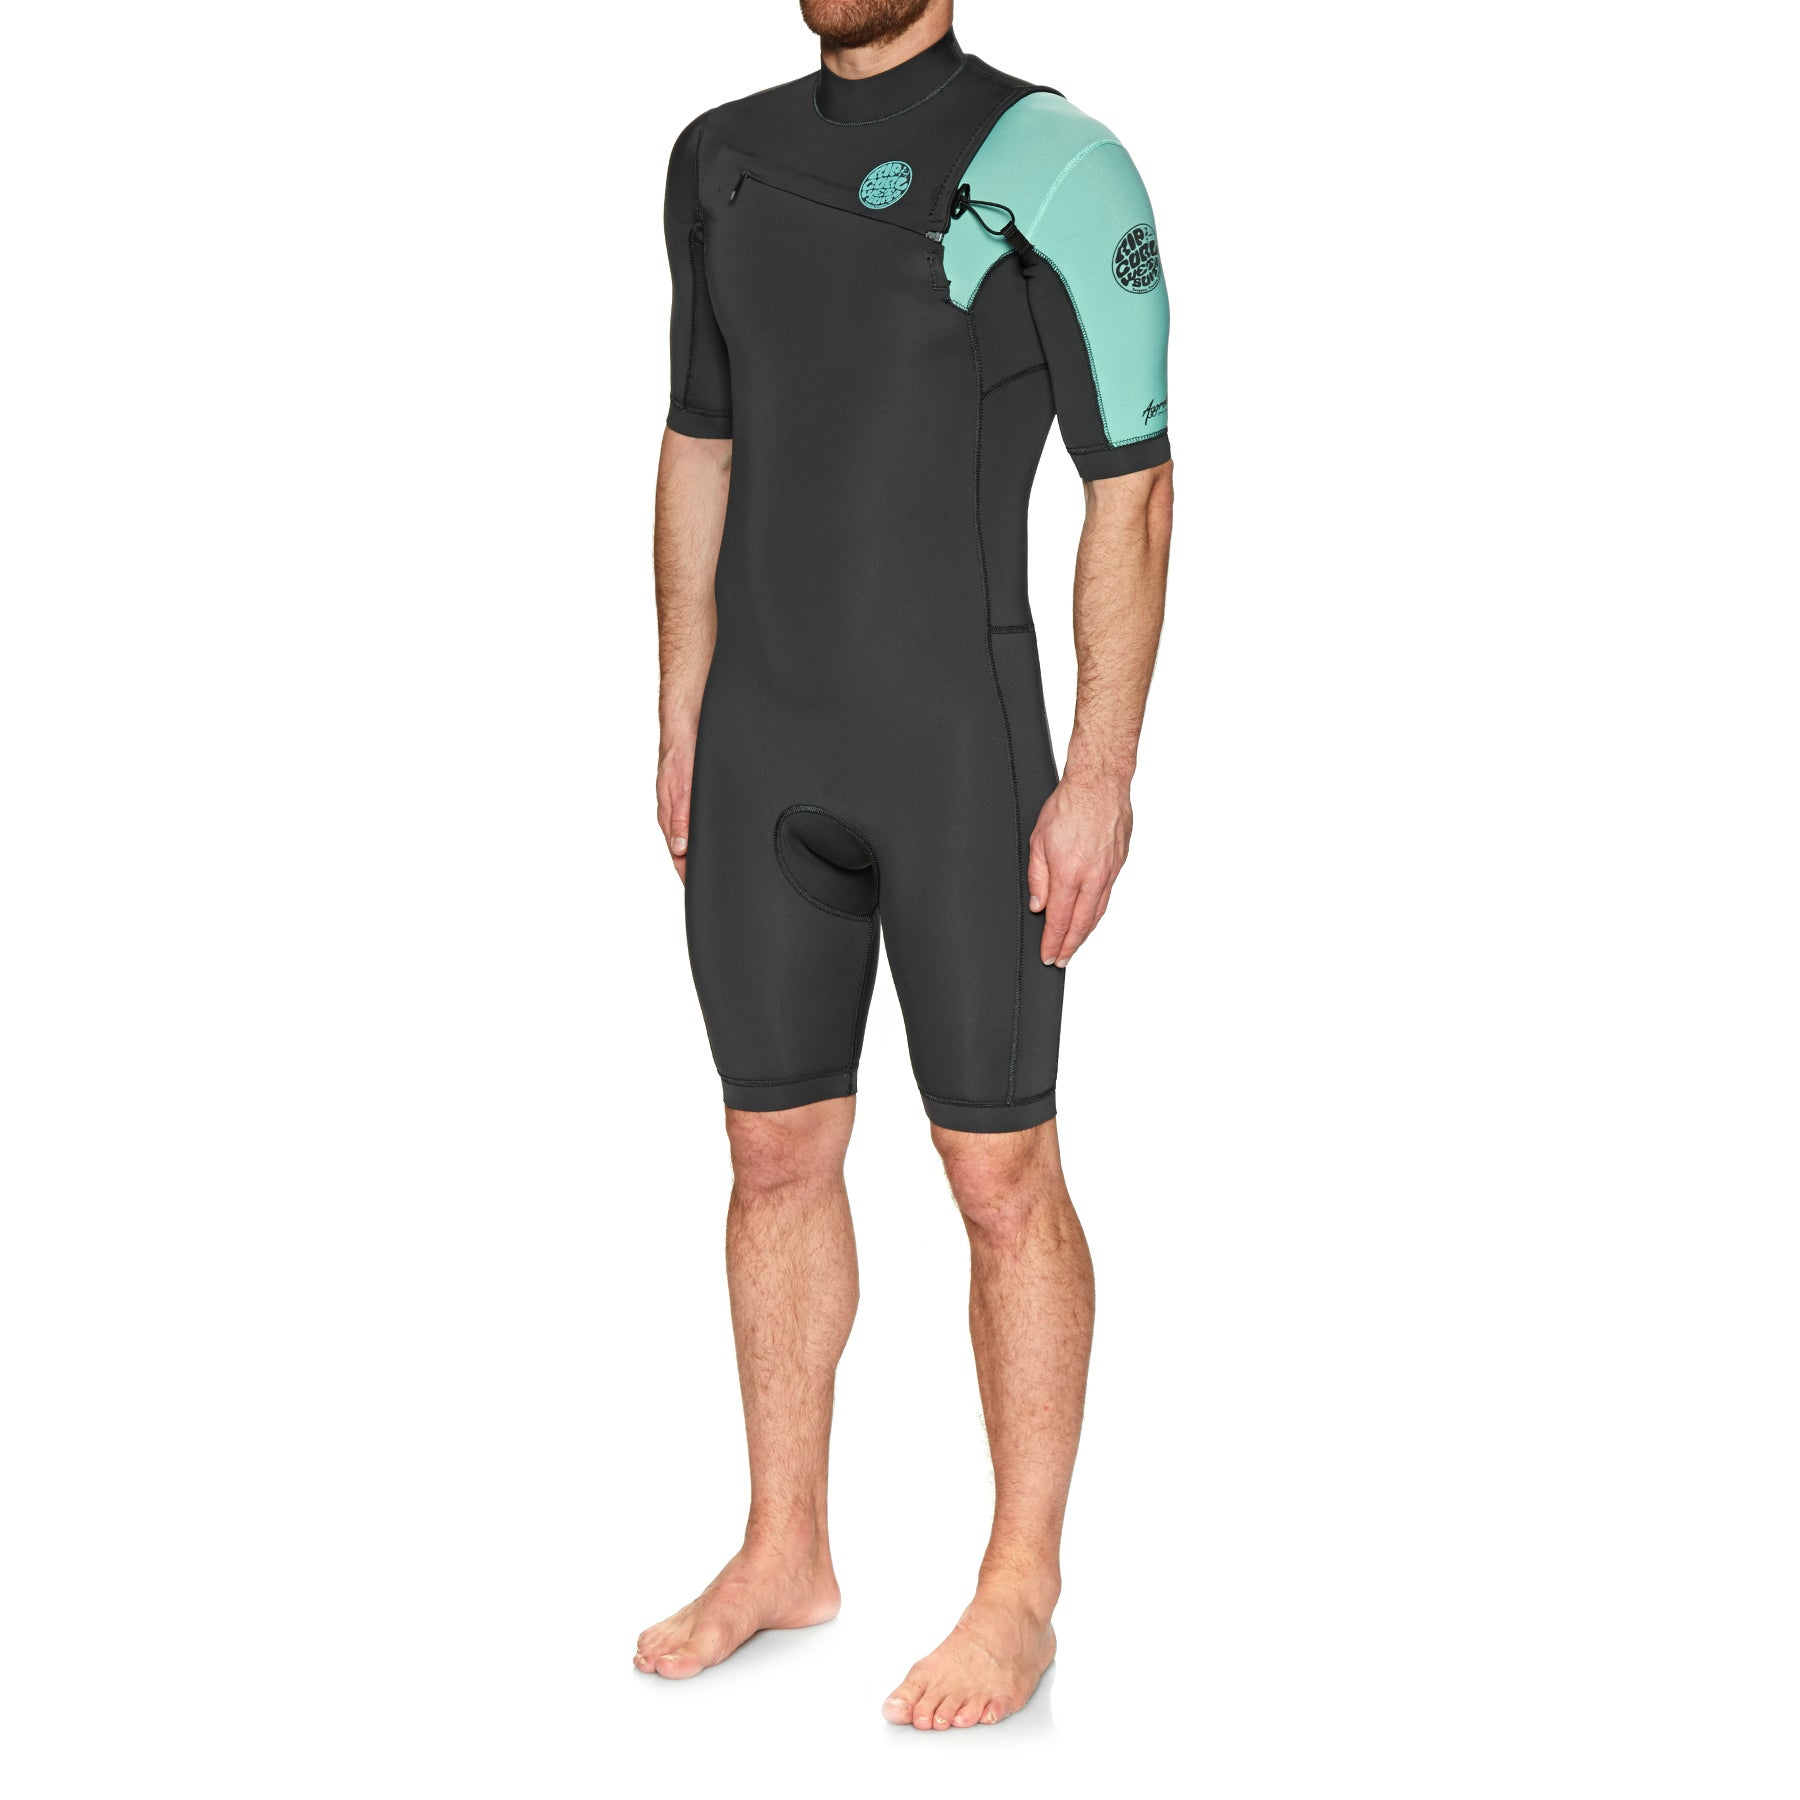 Rip Curl Aggro 2mm 2019 Chest Zip Shorty Wetsuit - Teal